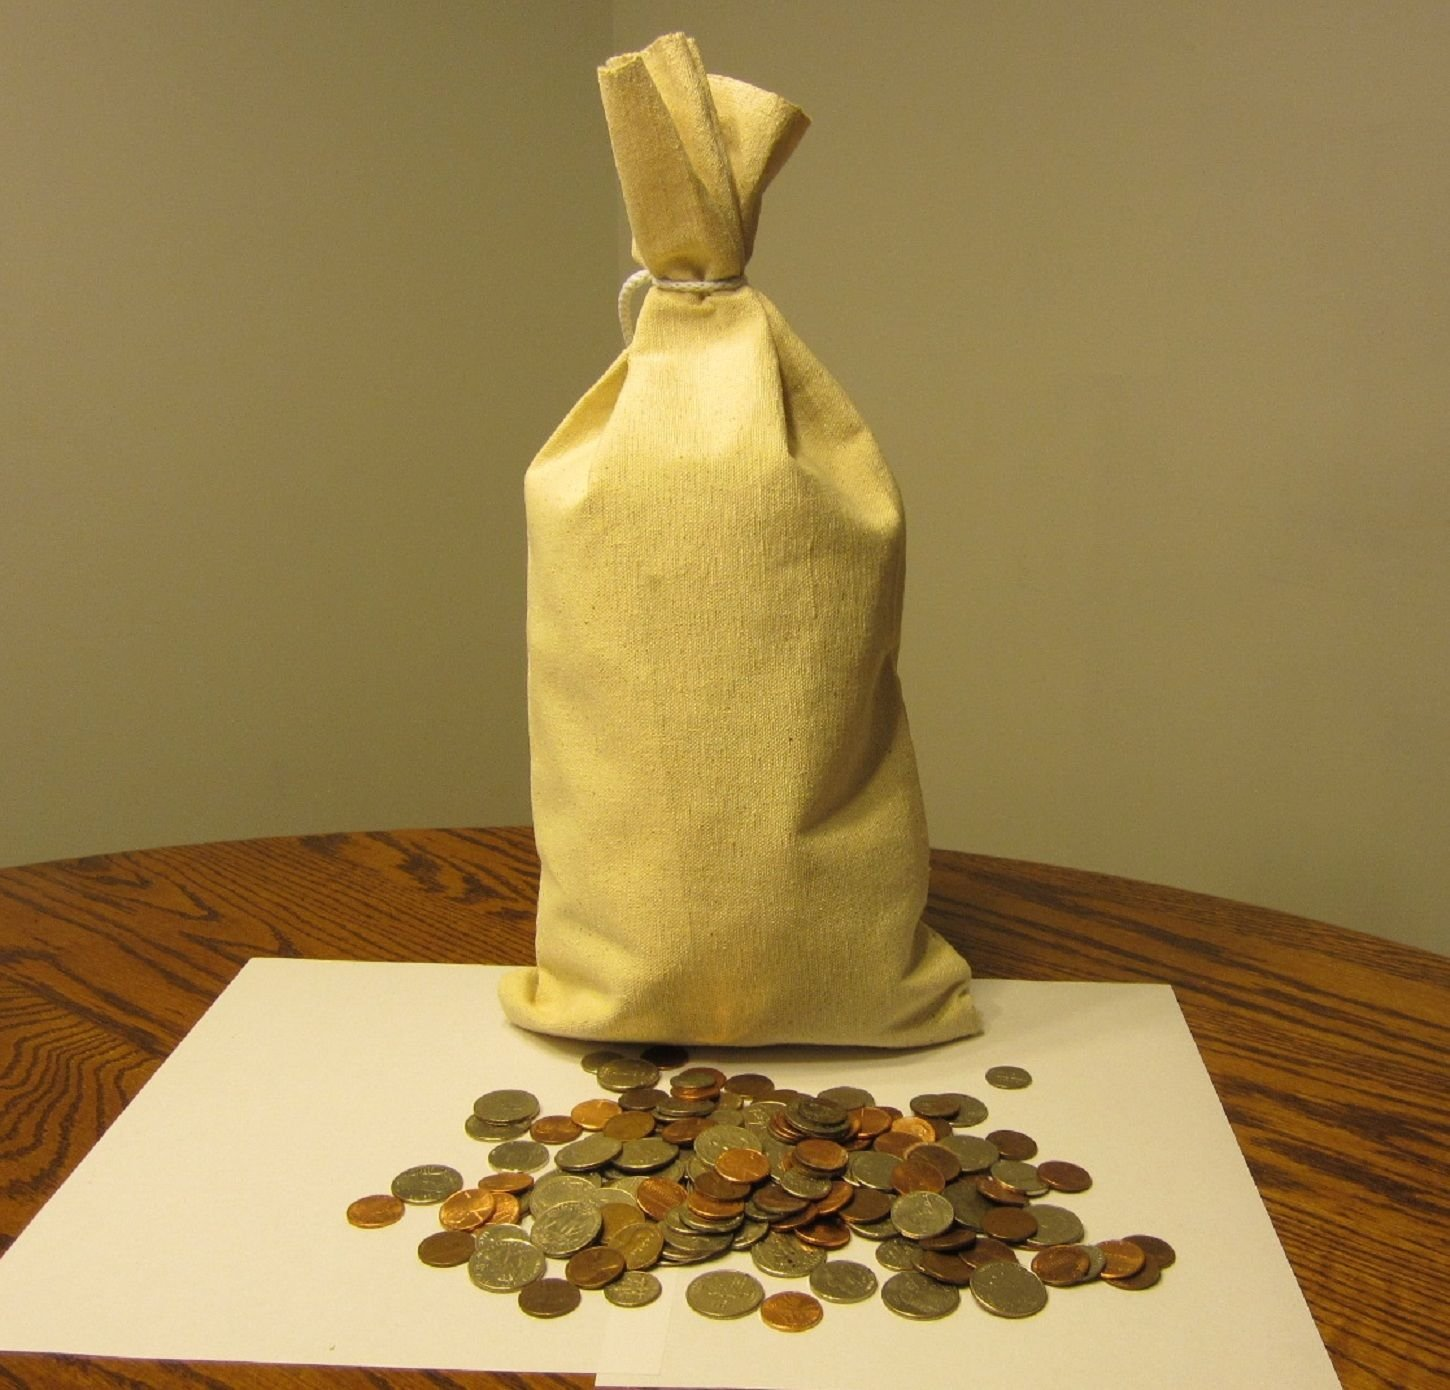 3 Canvas Bank Coin Money Sack Bag 9'' By 17.5'' Deposit Change Bags Transit by Transit Sacks